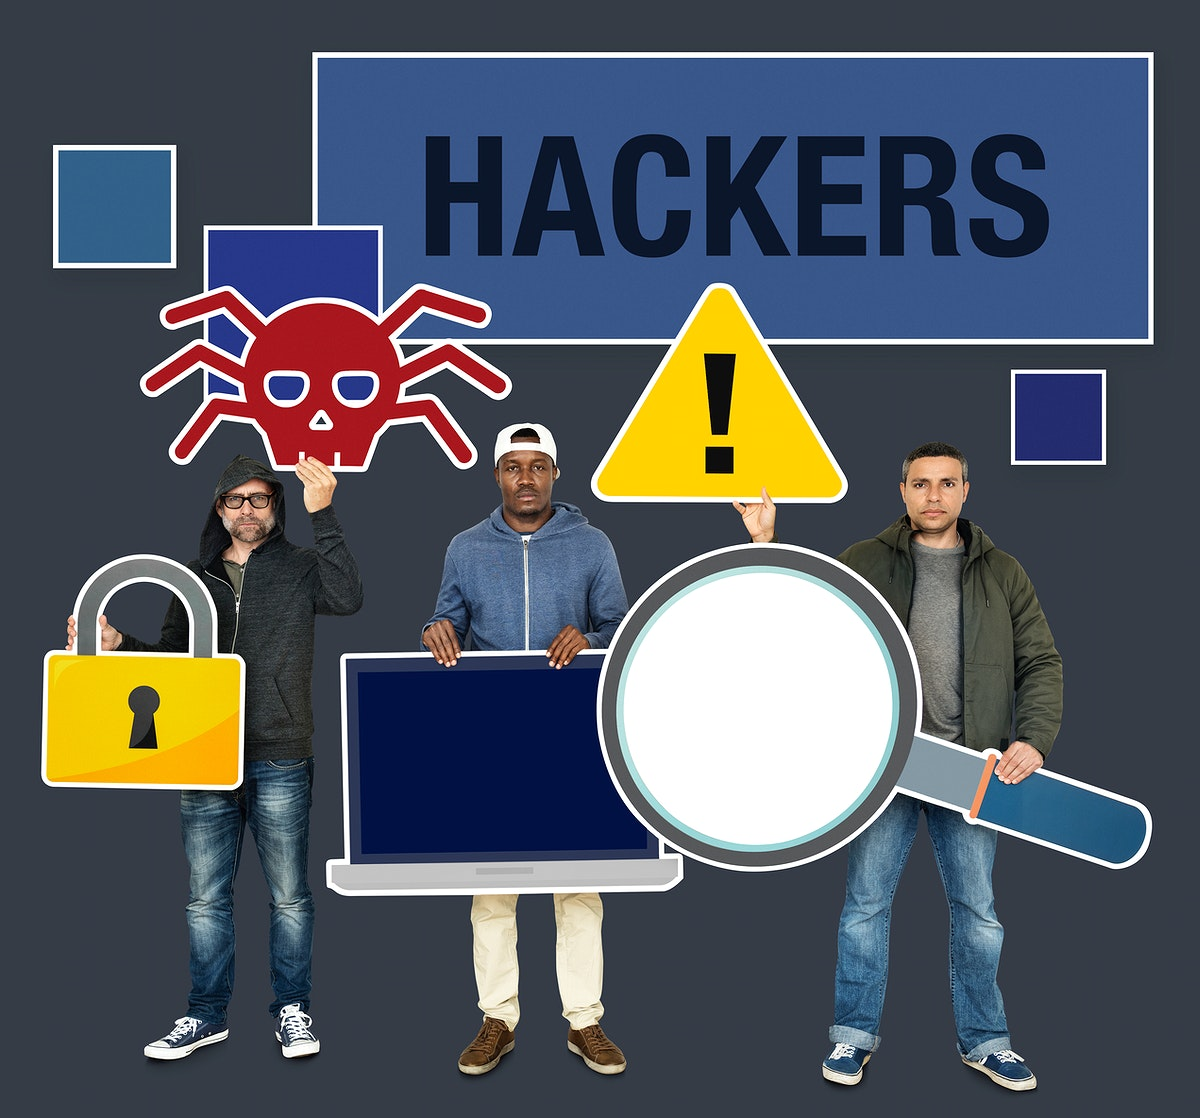 Hackers with internet crime icons